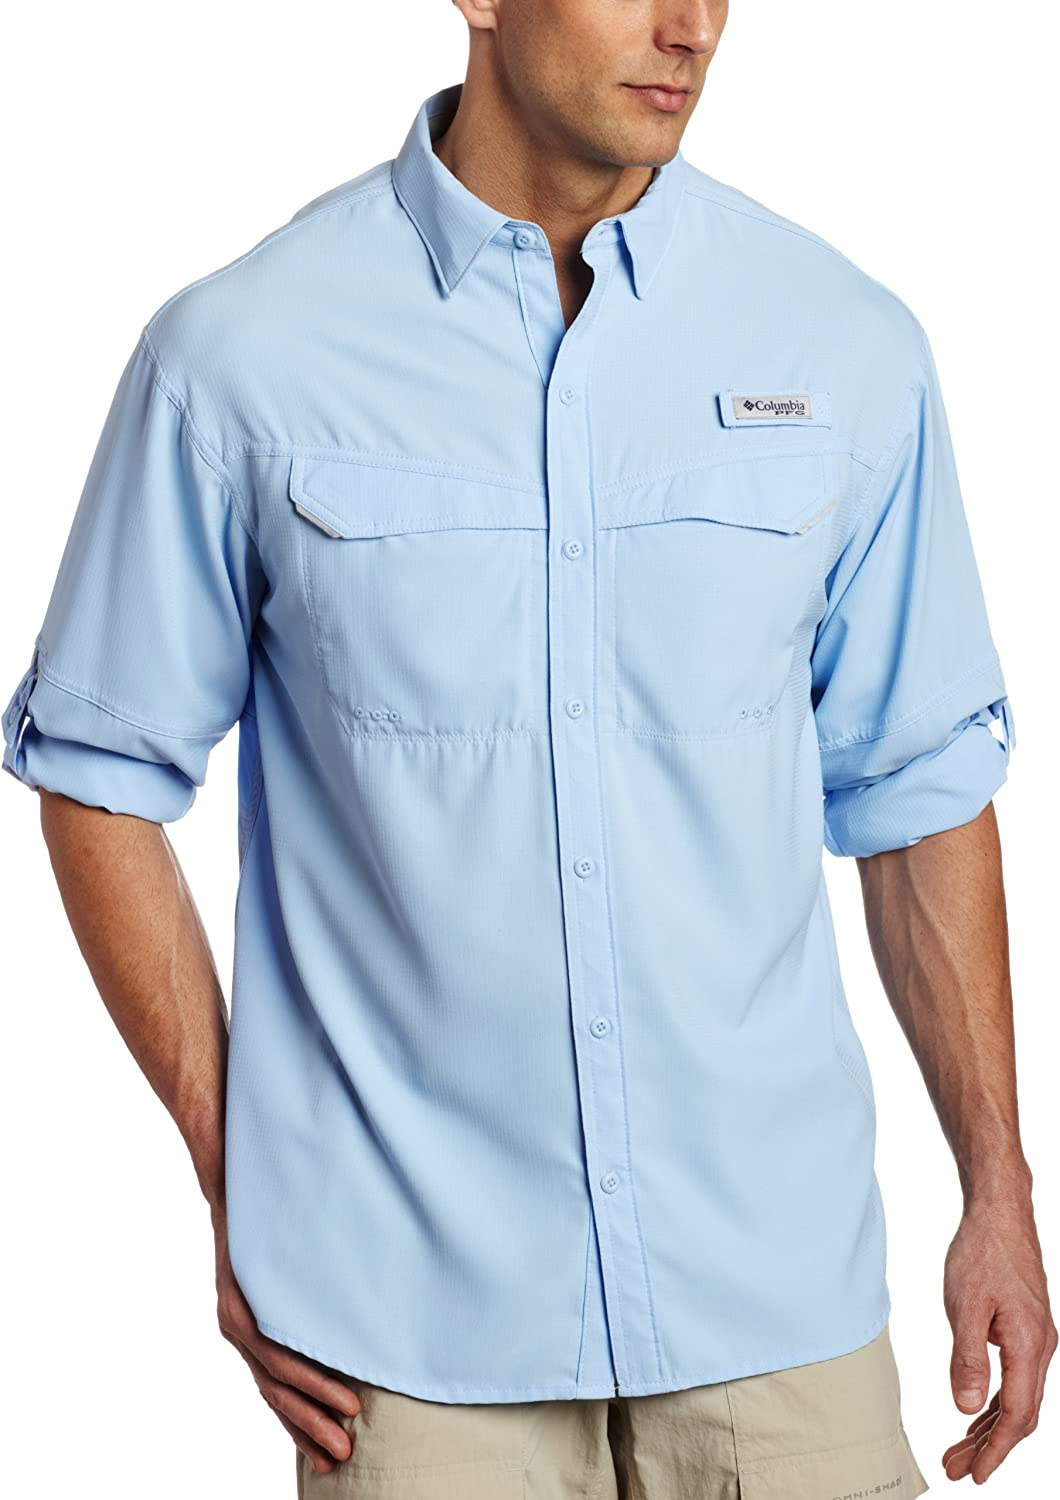 Columbia quality assurance mens Low Industry No. 1 Drag Shirt Long-sleeve Offshore